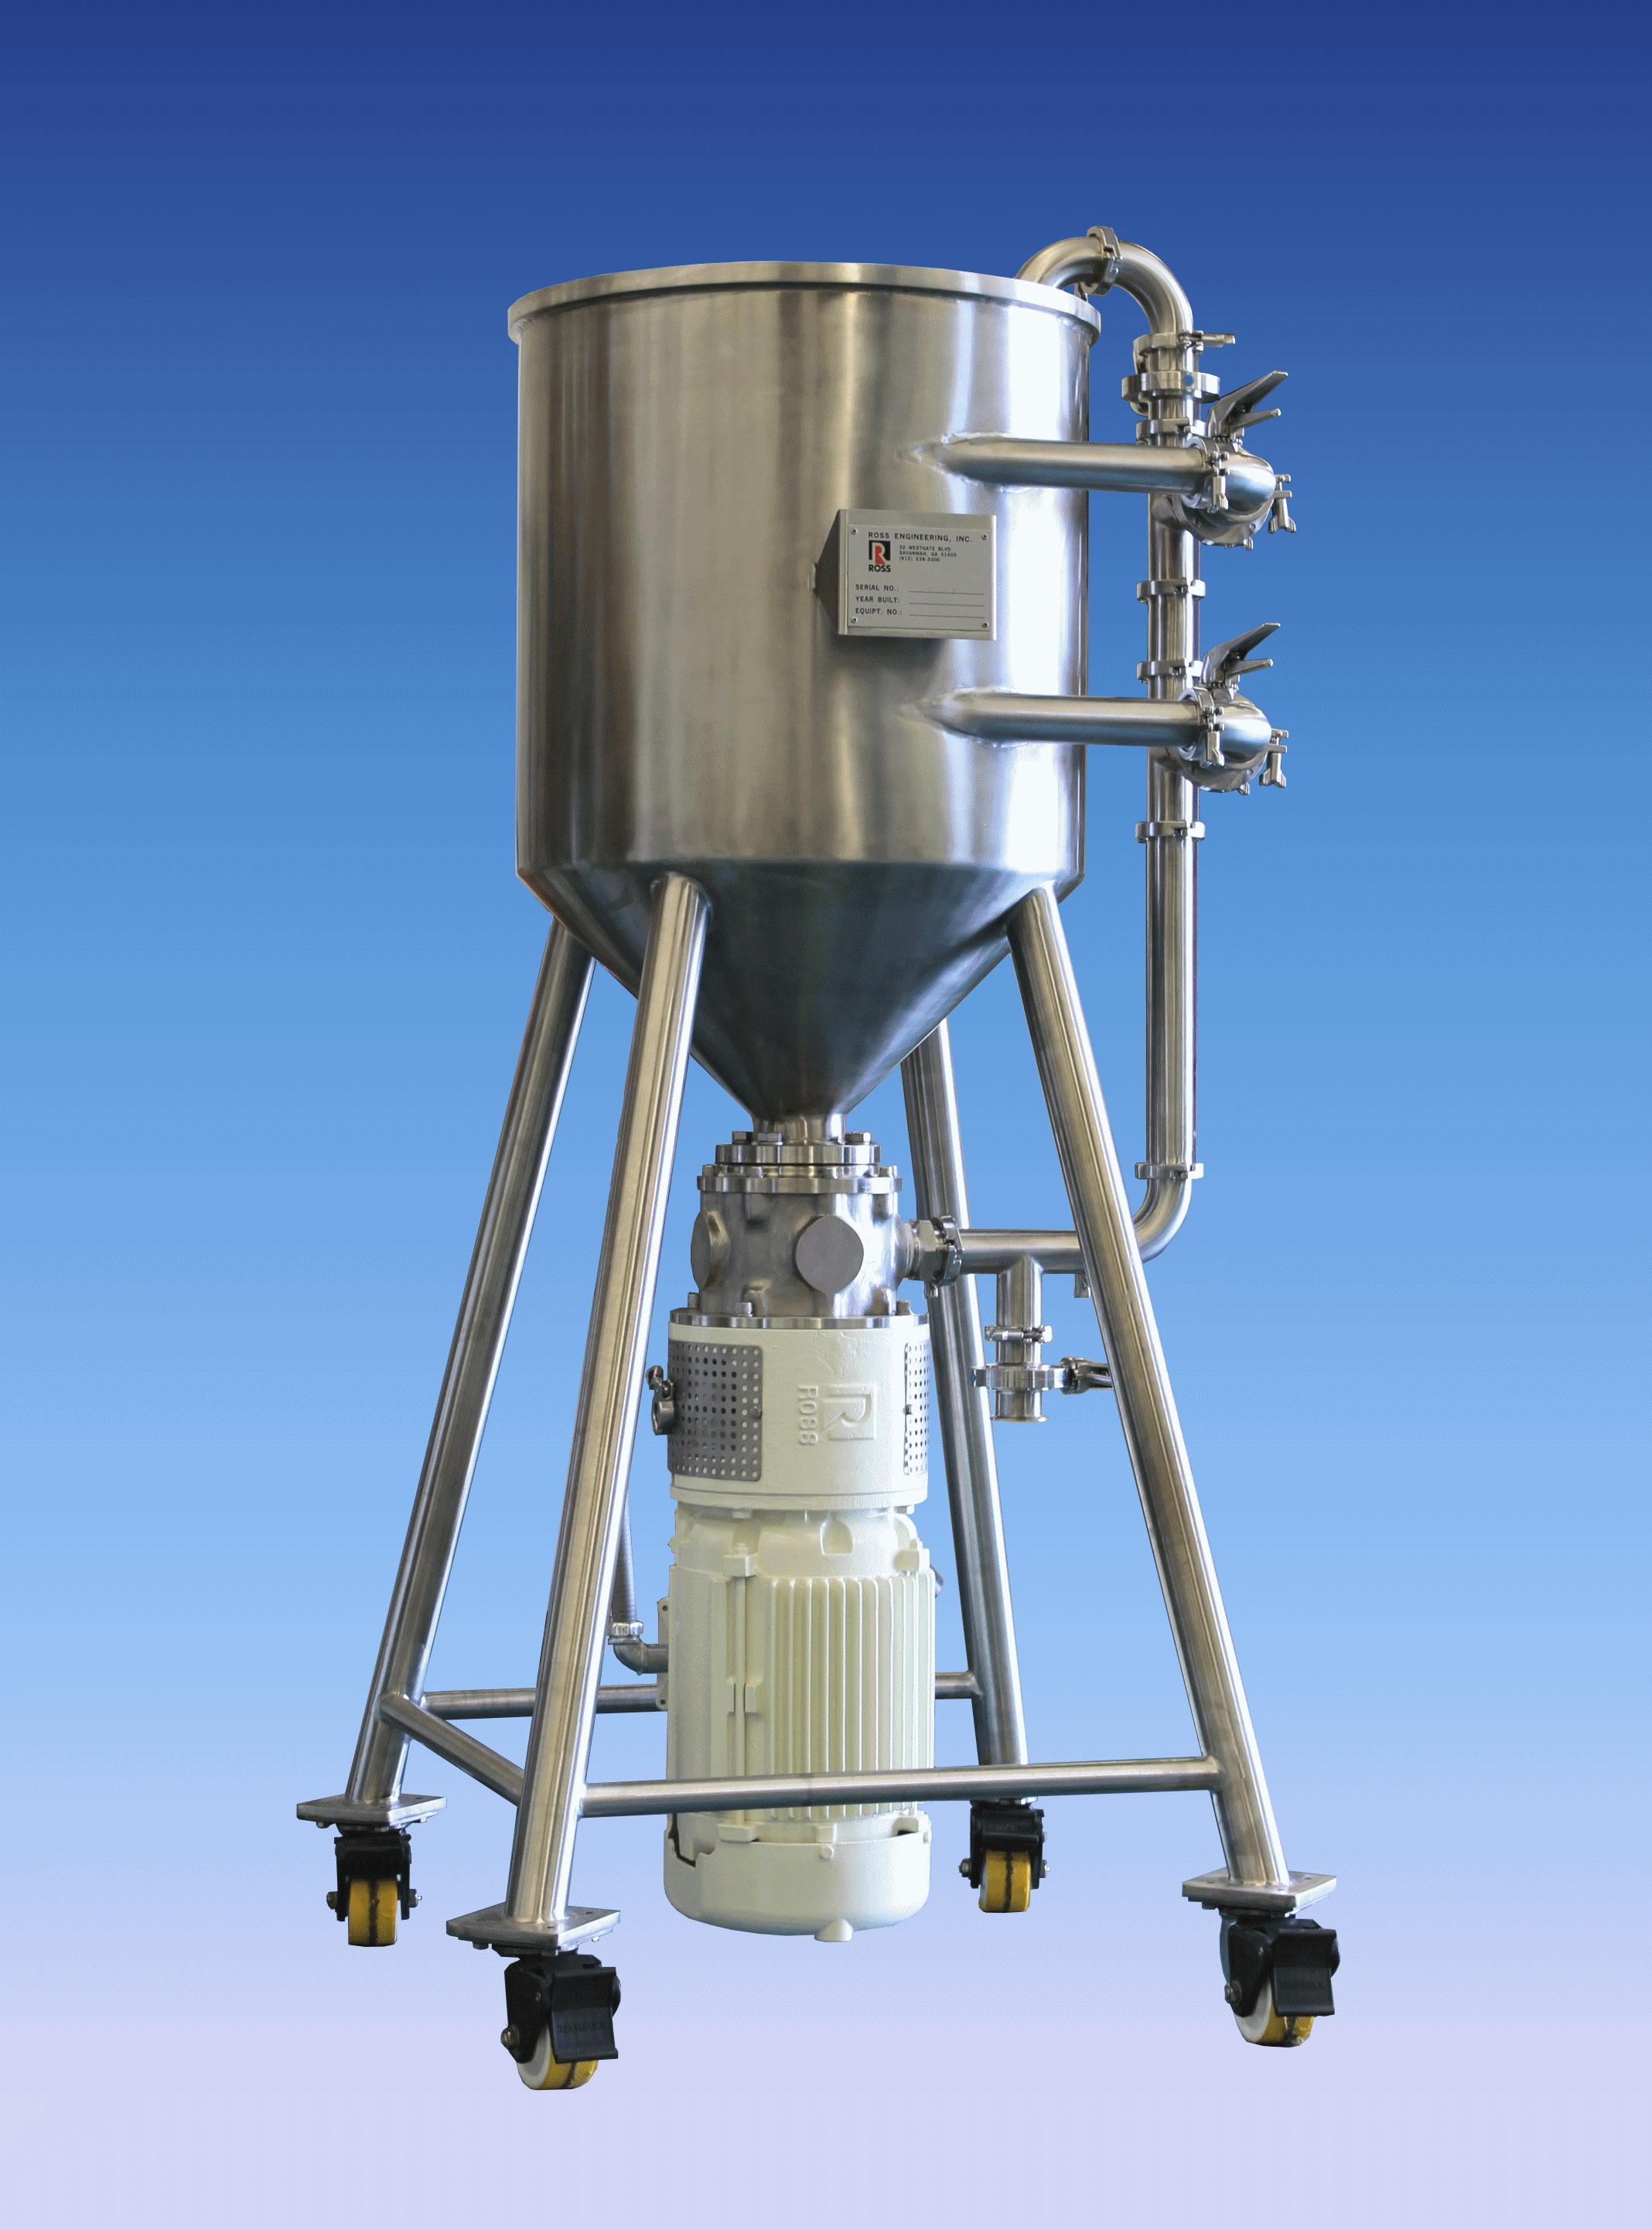 Ross launches Inline High Shear Mixers | New Hope Network